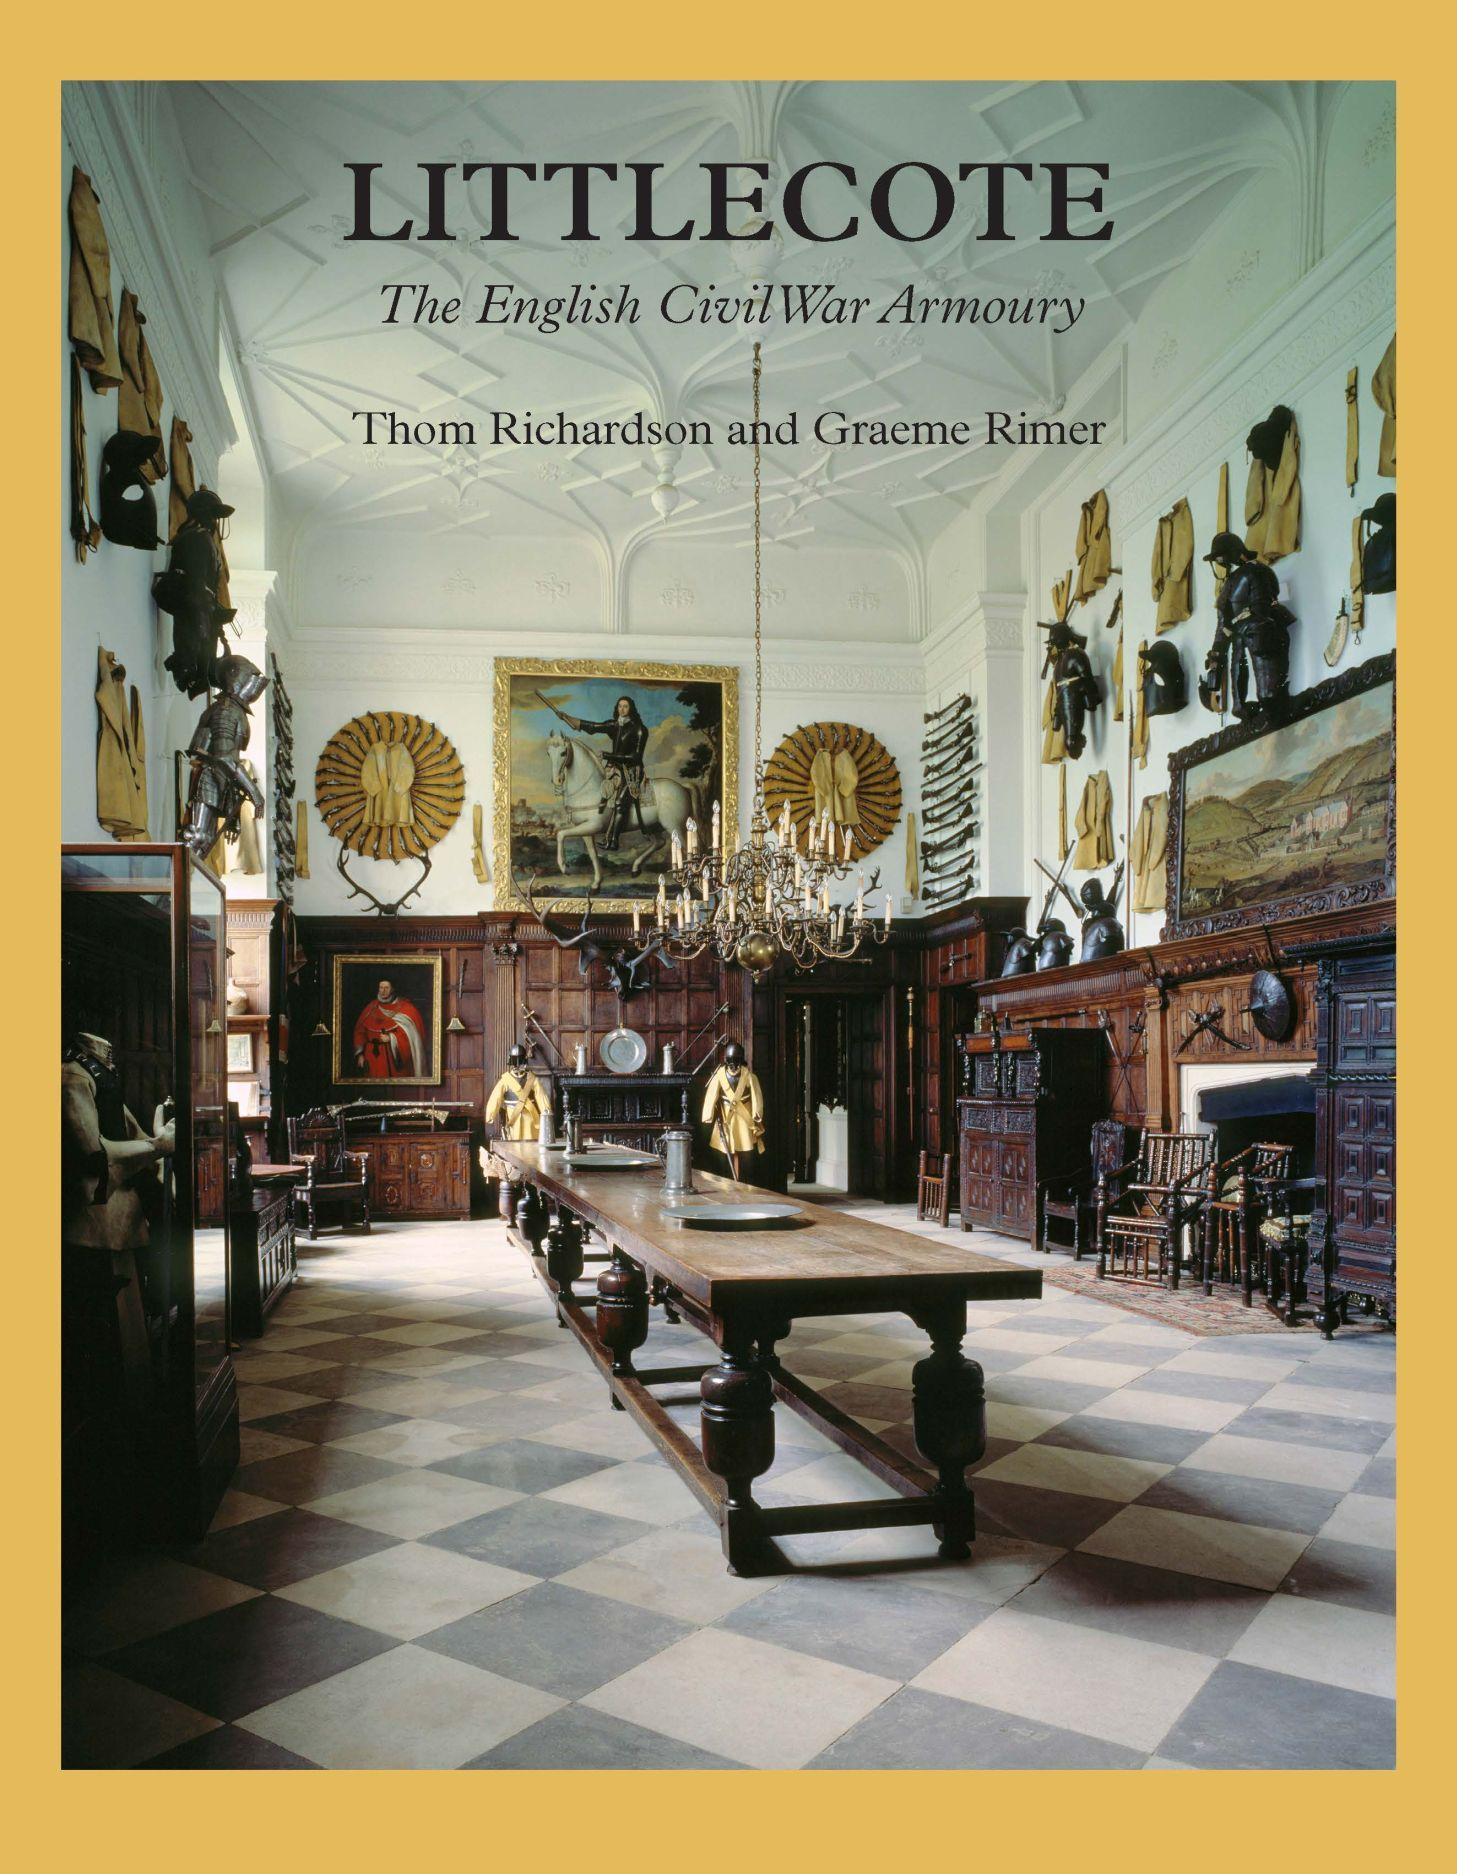 Littlecote: The English Civil War Armoury